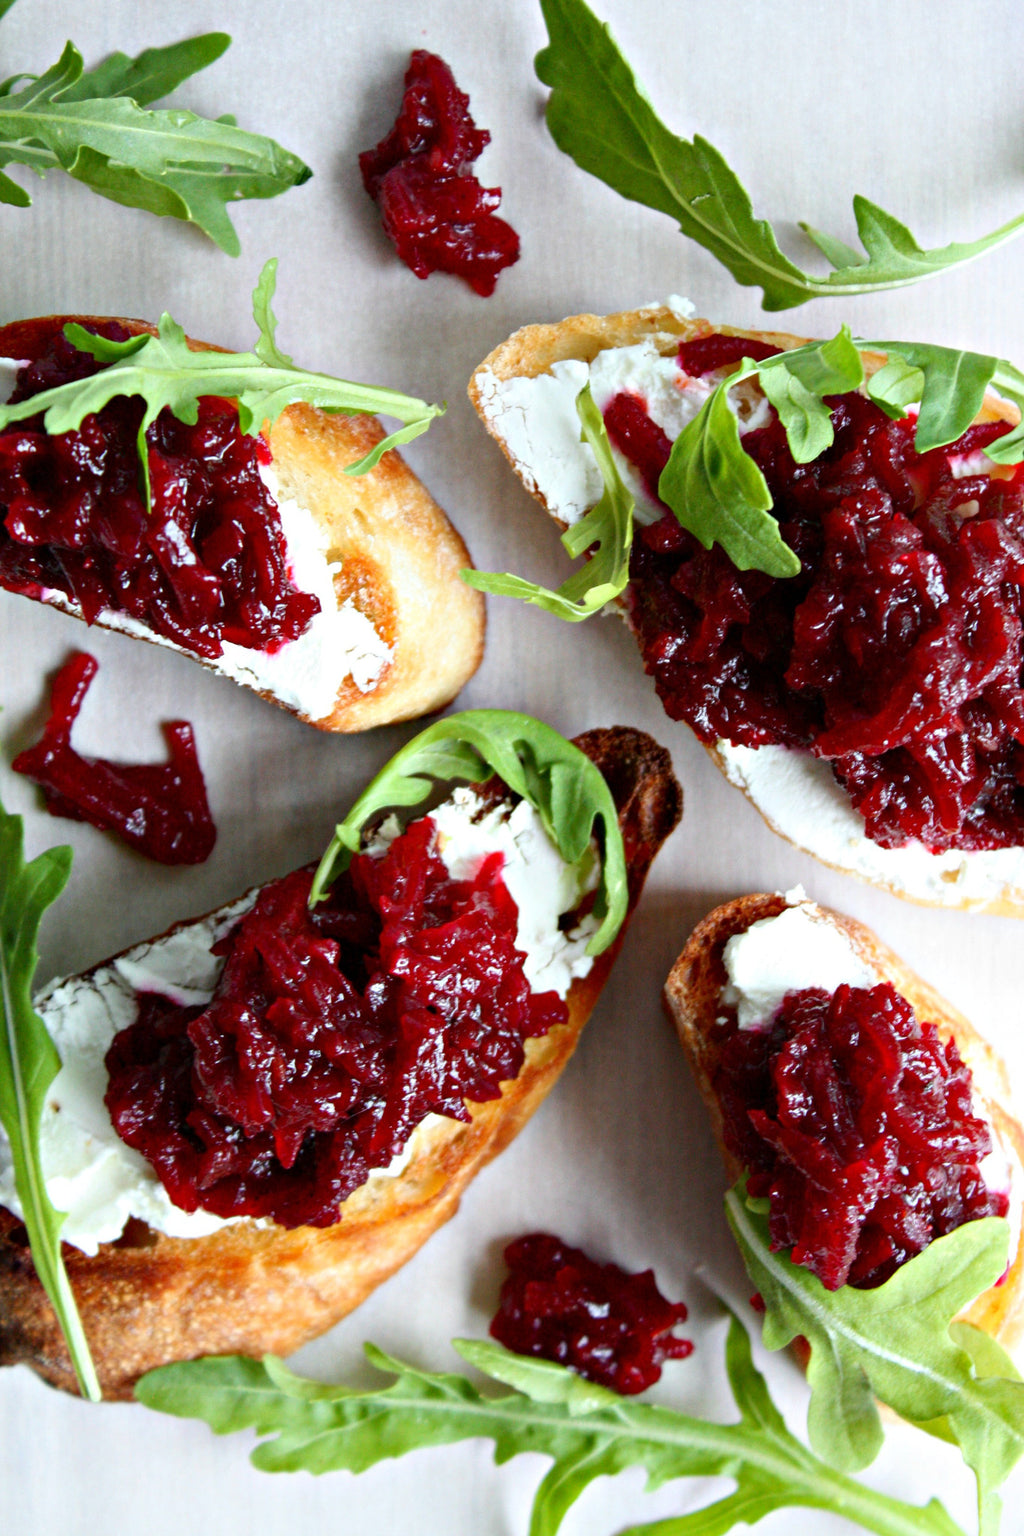 Beet Goats Cheese Crostini | Wozz! Kitchen Creations